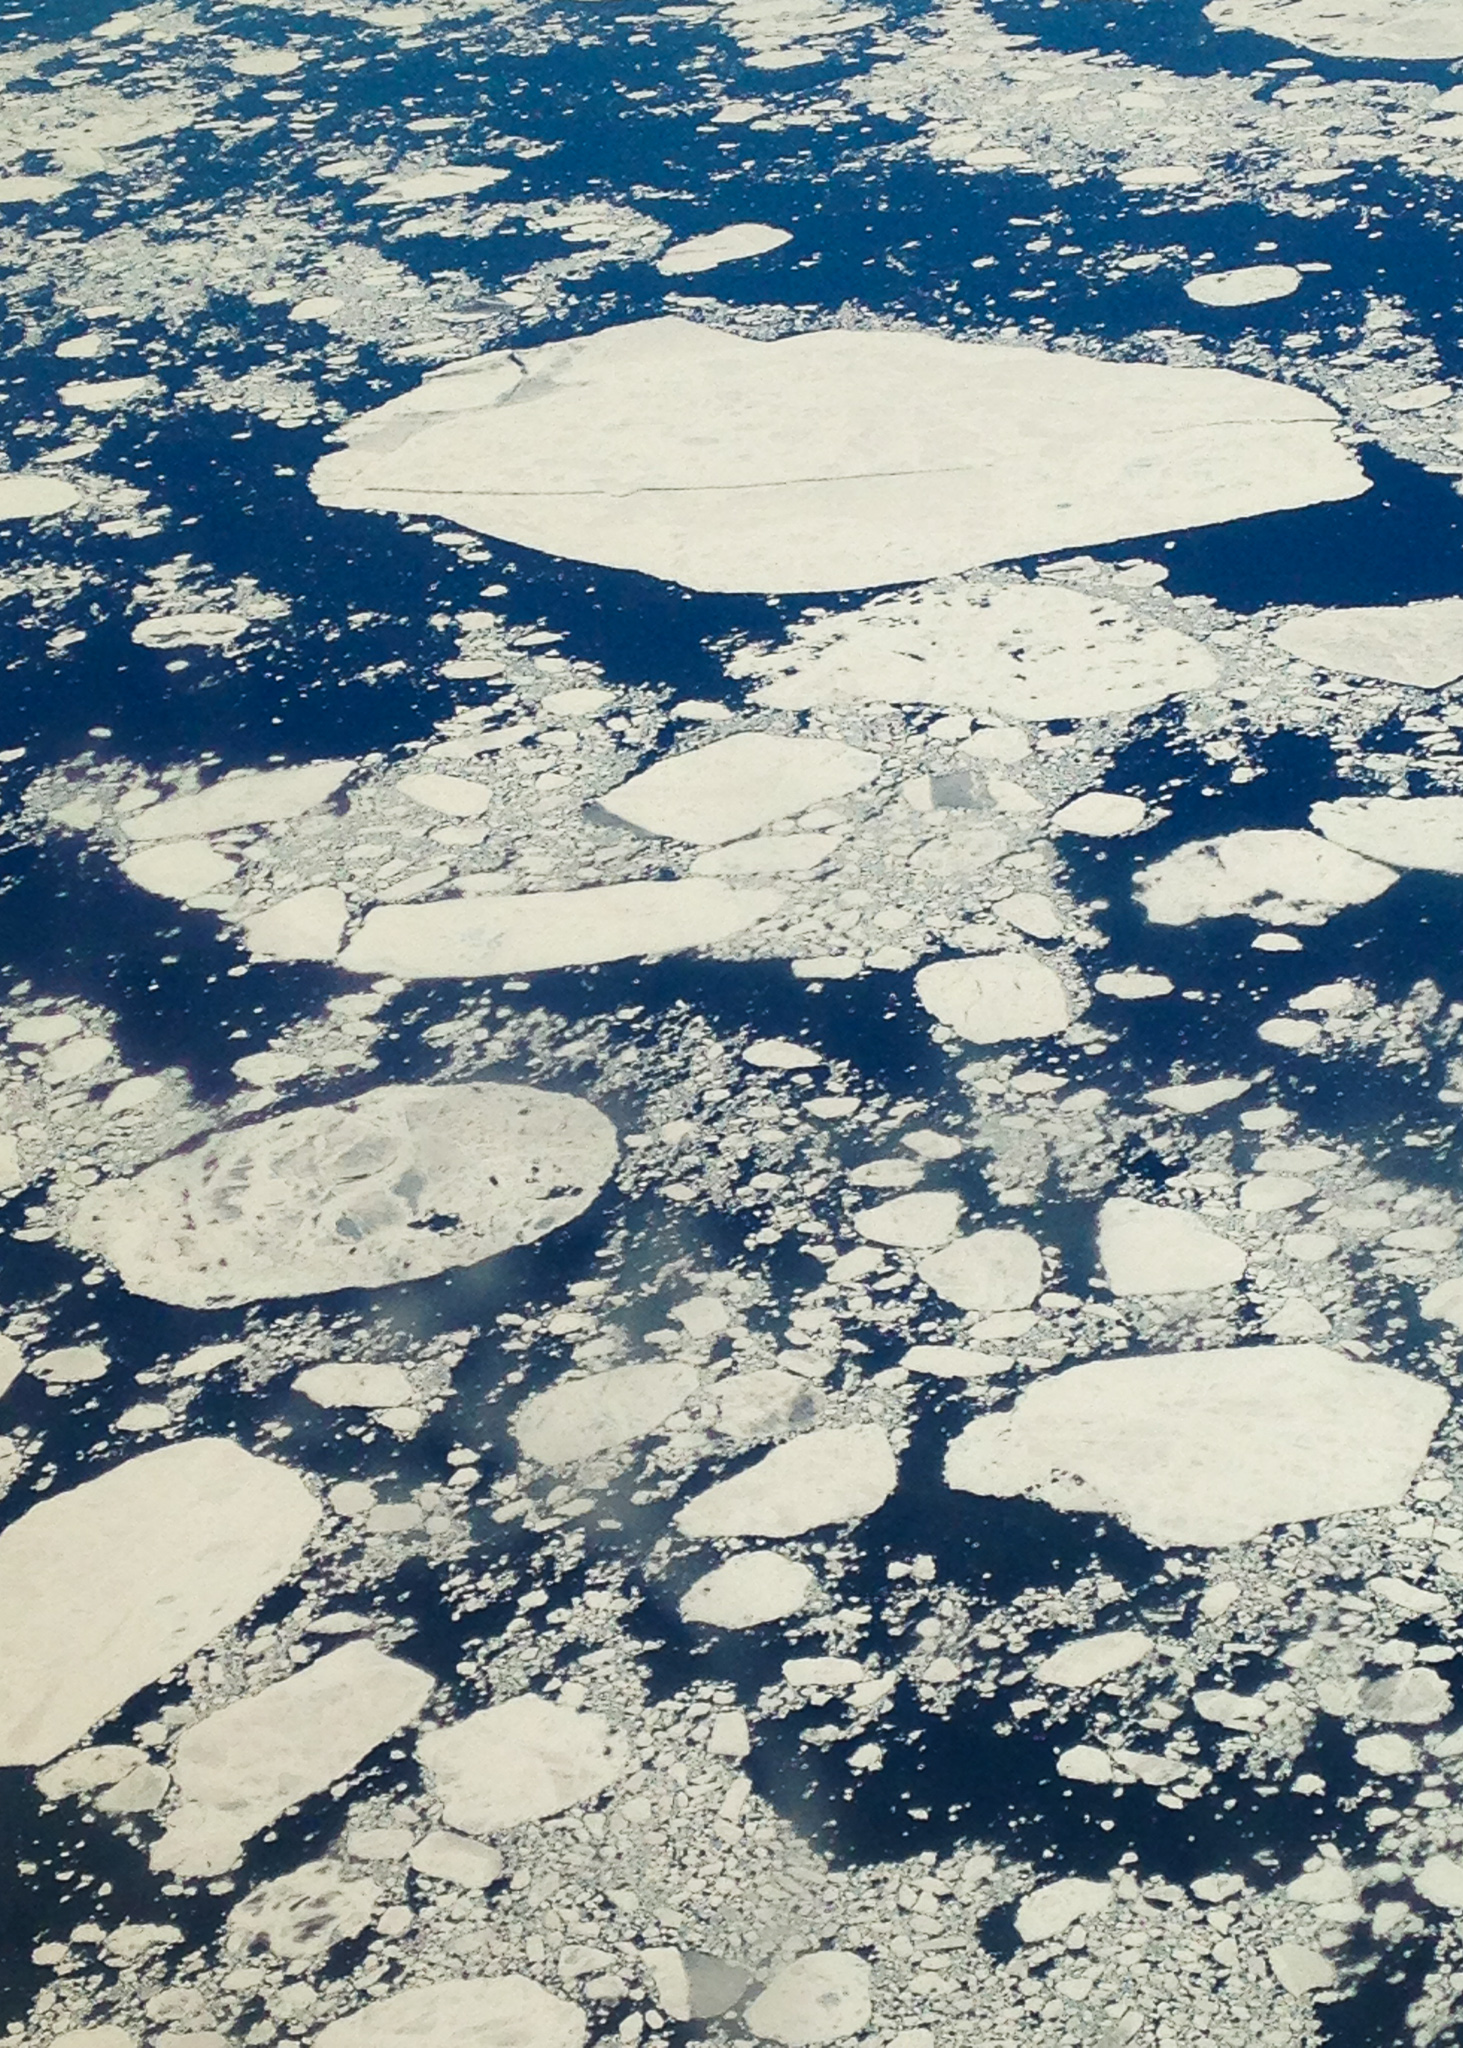 ice sheets on top of water